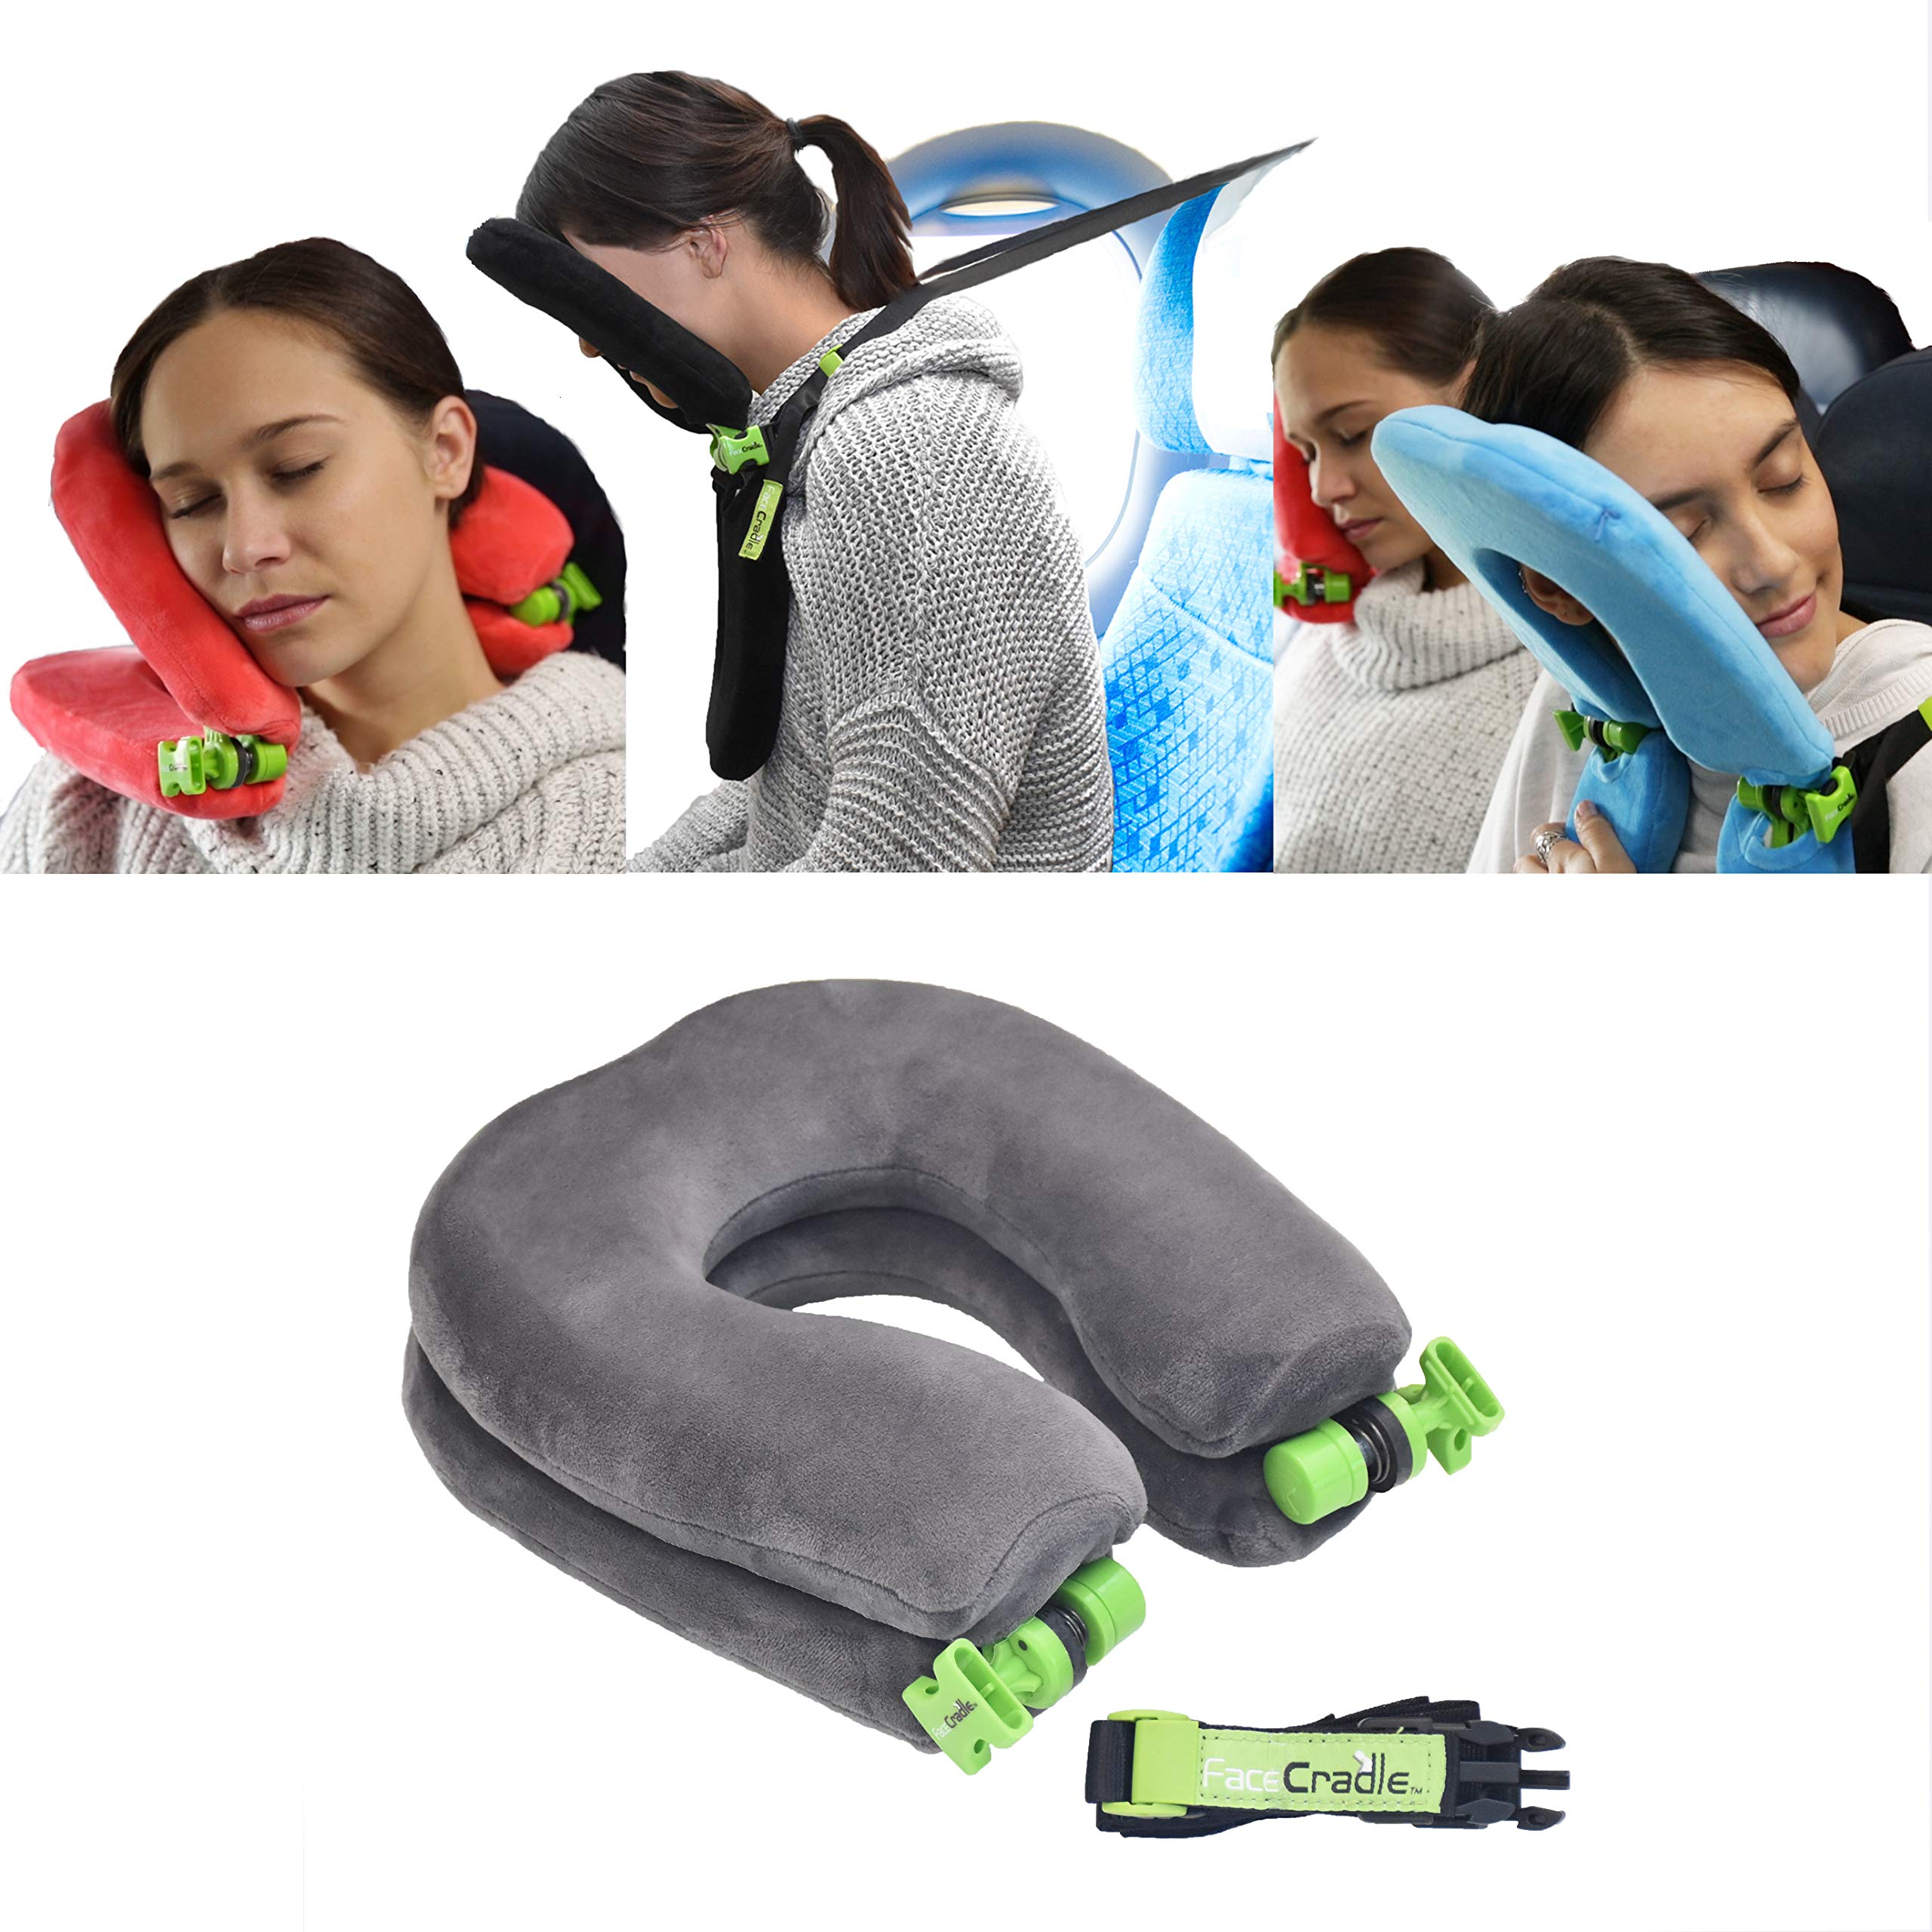 FaceCradle - Latest Model, 5 Modes Plus, Multi Function, Better Neck Support,Sleep Forward for Travel on Plane, car, Bus, Train or for nap on Any Table. (Grey) by FaceCradle